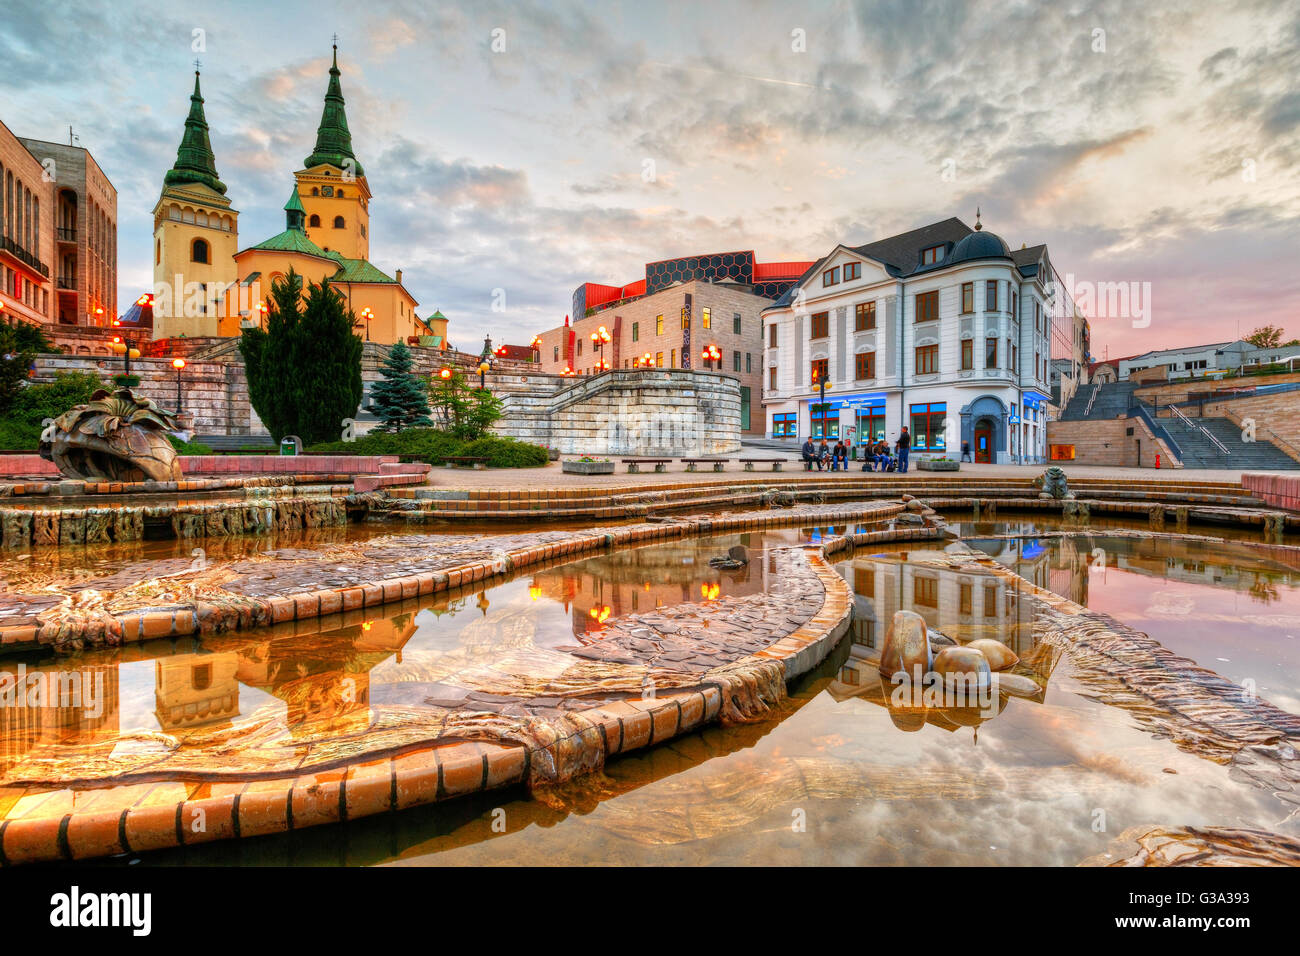 Main square in the city of Zilina in central Slovakia. HDR image. - Stock Image